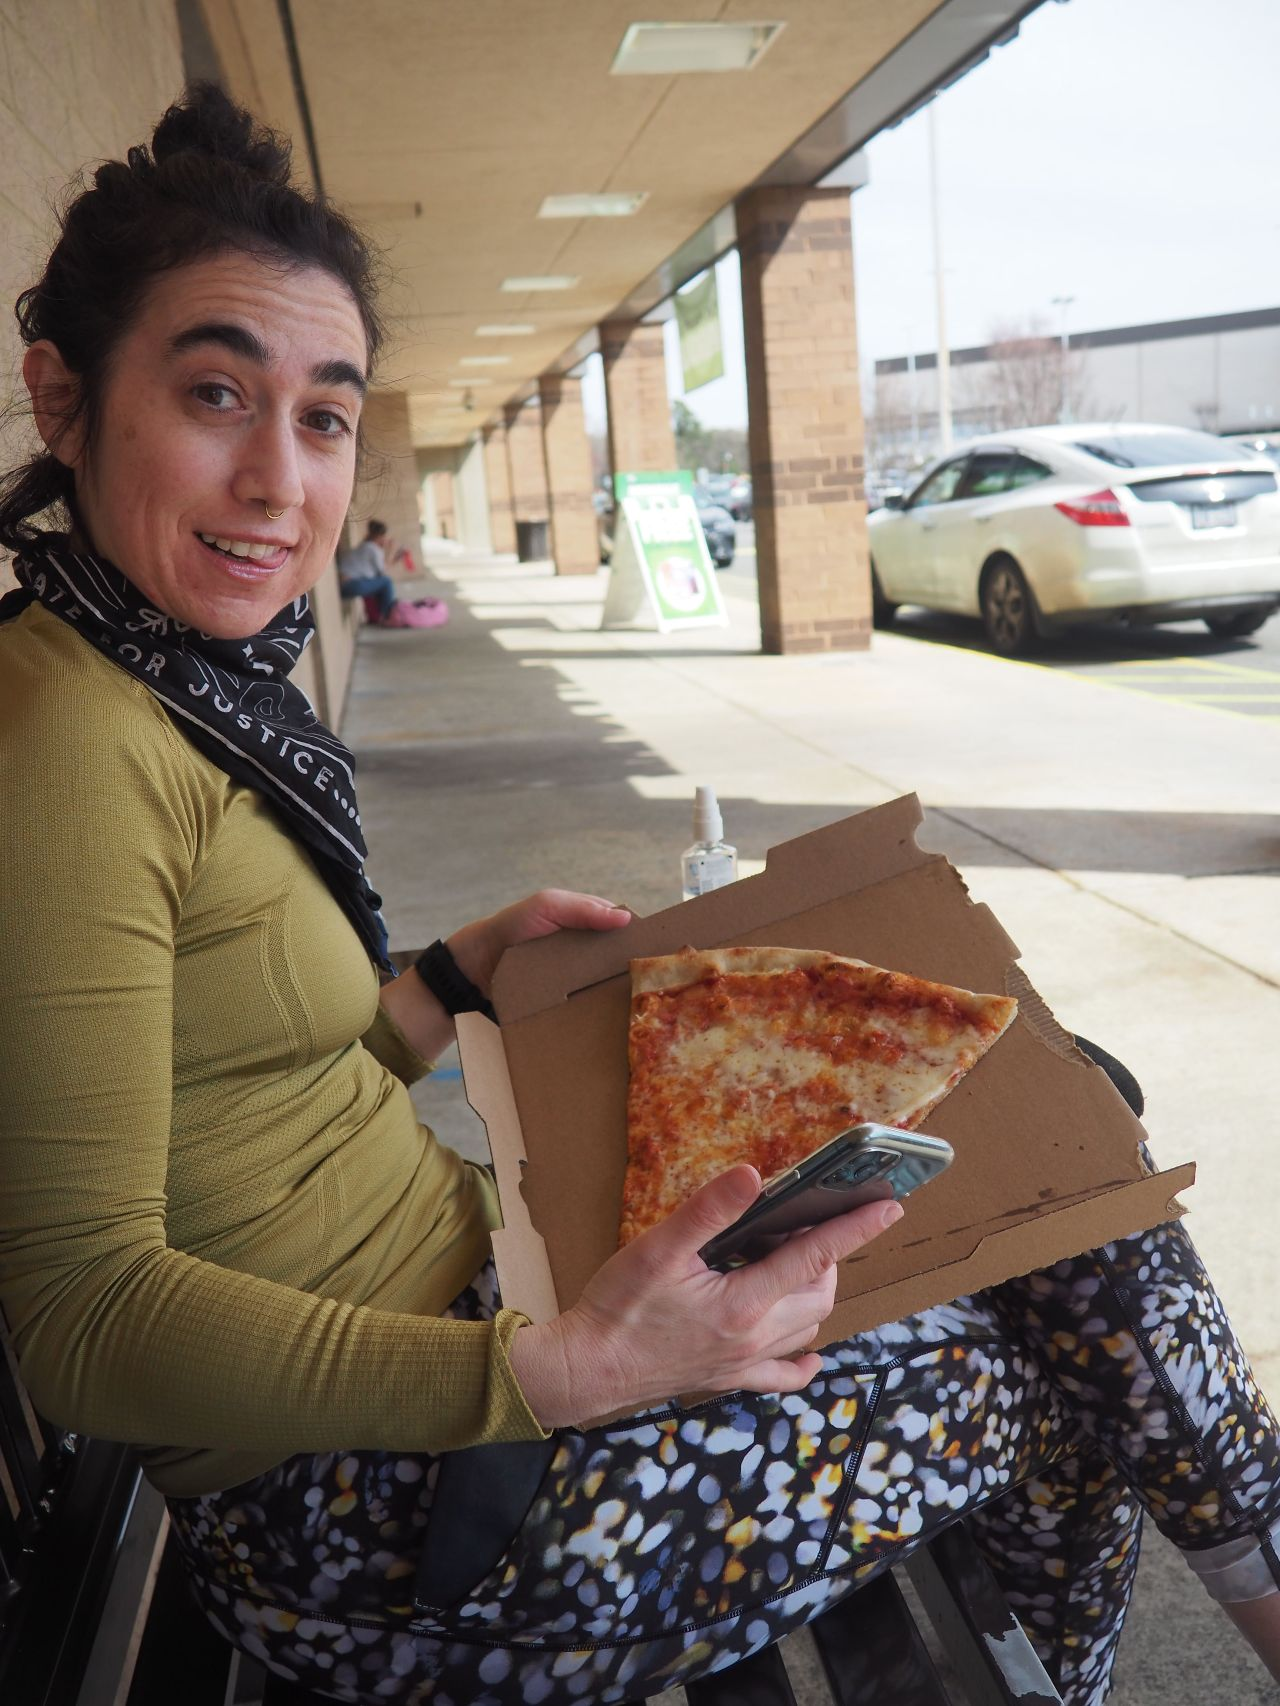 A woman with dark curly hair holding a slice of pizza.